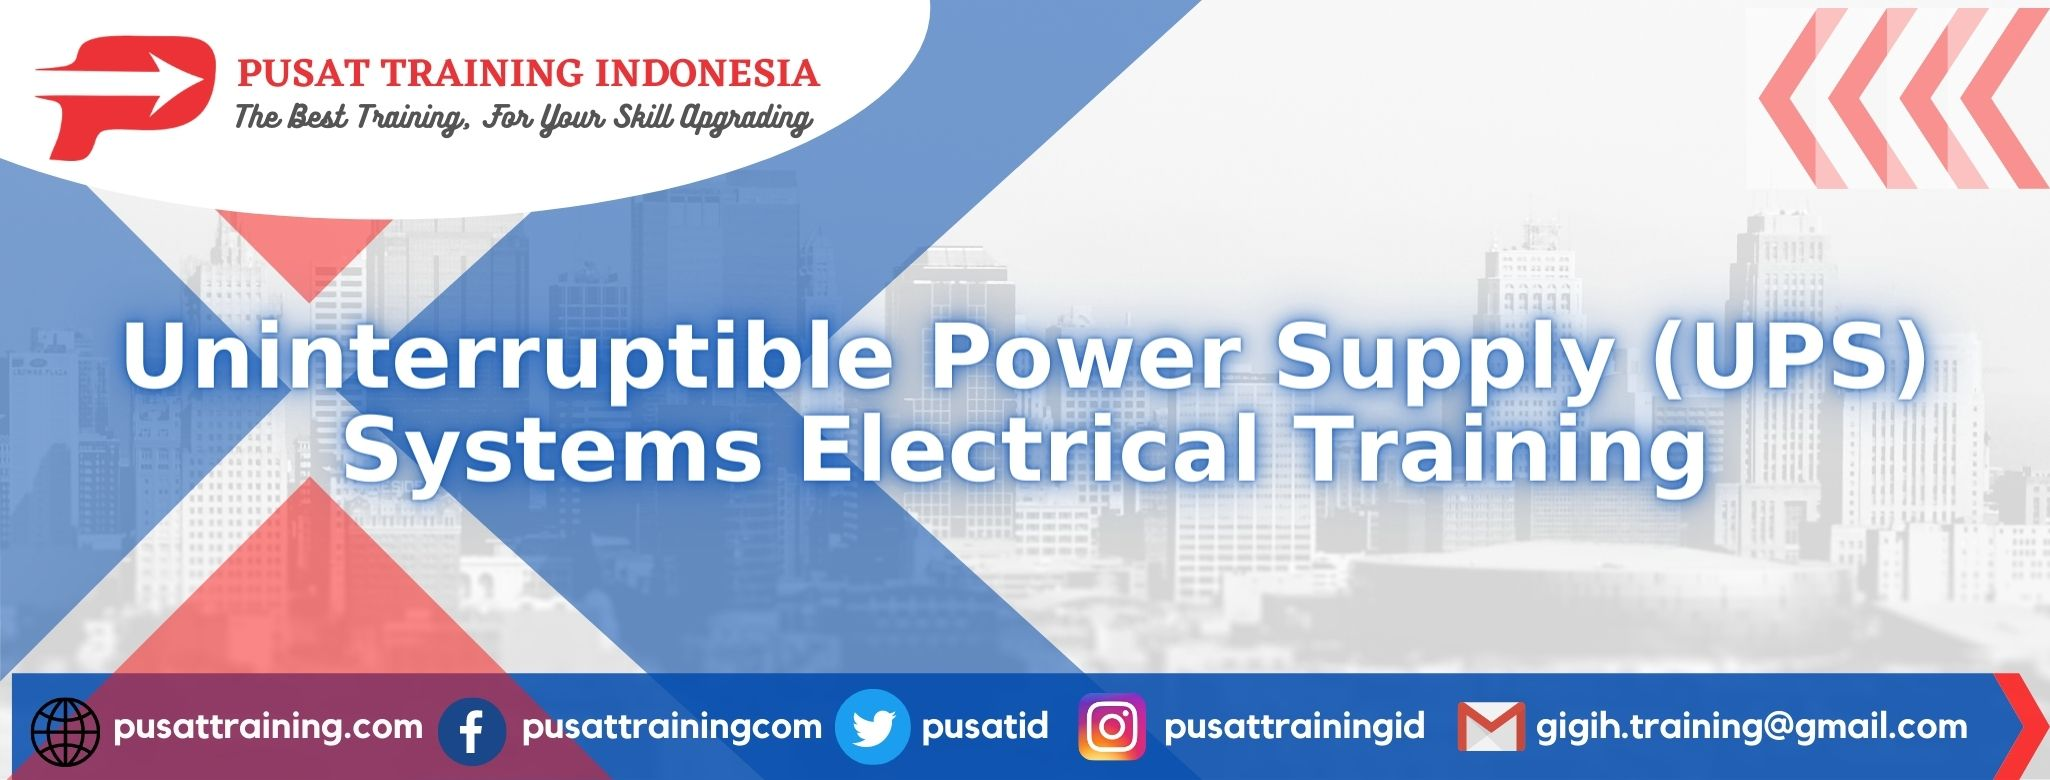 Uninterruptible-Power-Supply-UPS-Systems-Electrical-Training